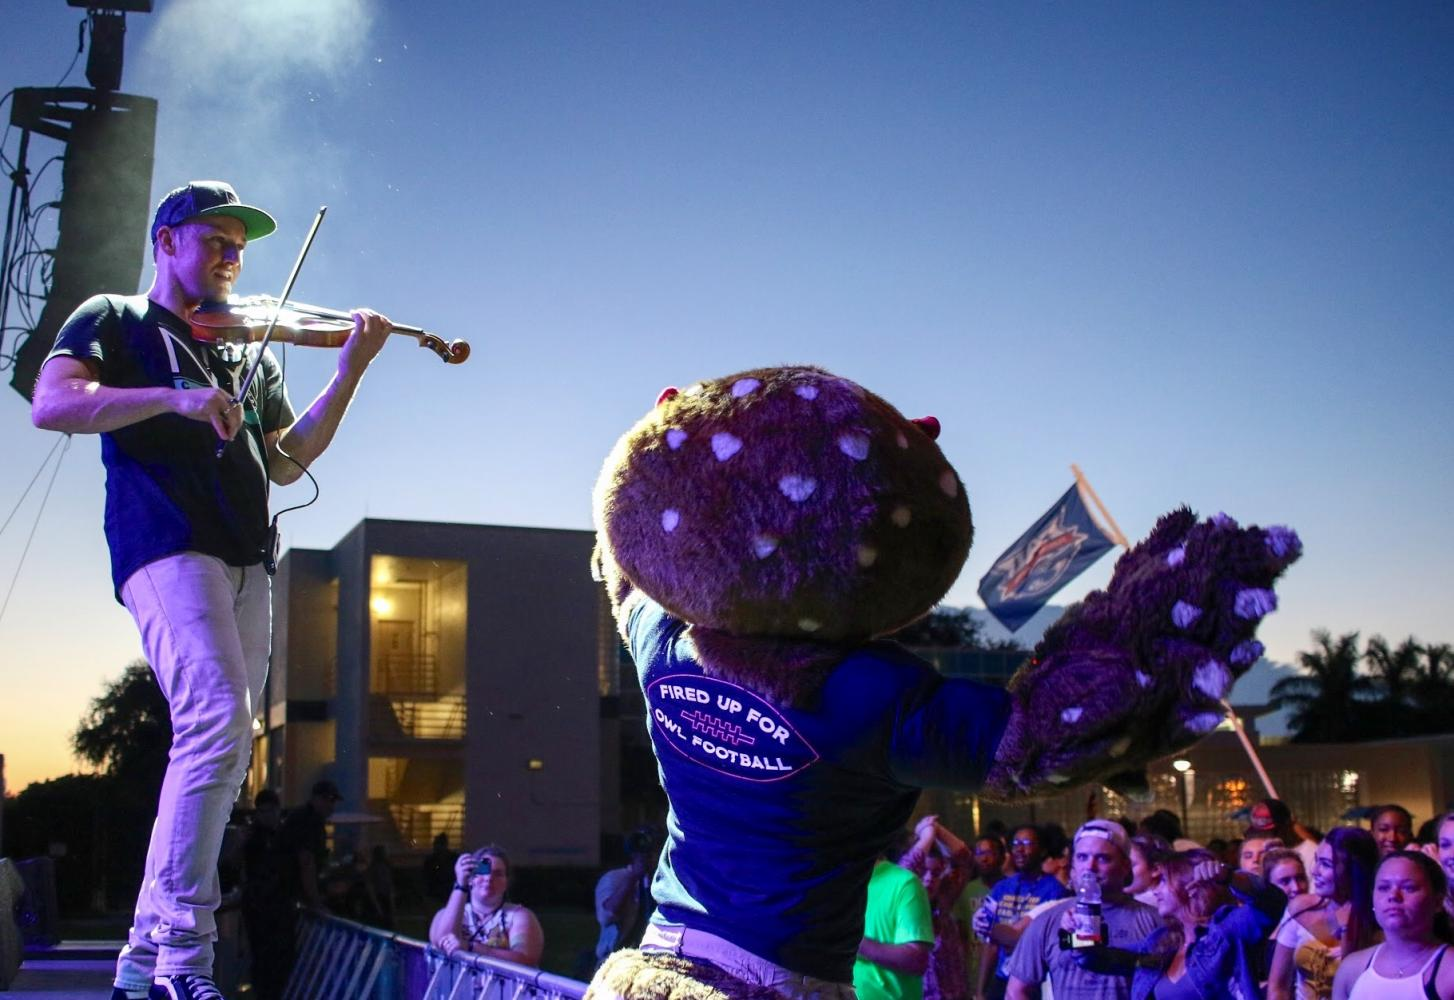 FAU's mascot Owlsley helps the opening act, hip-hop violinist Josh Vietti, get the crowd dancing during his performance. Joshua Giron | contributing photographer.